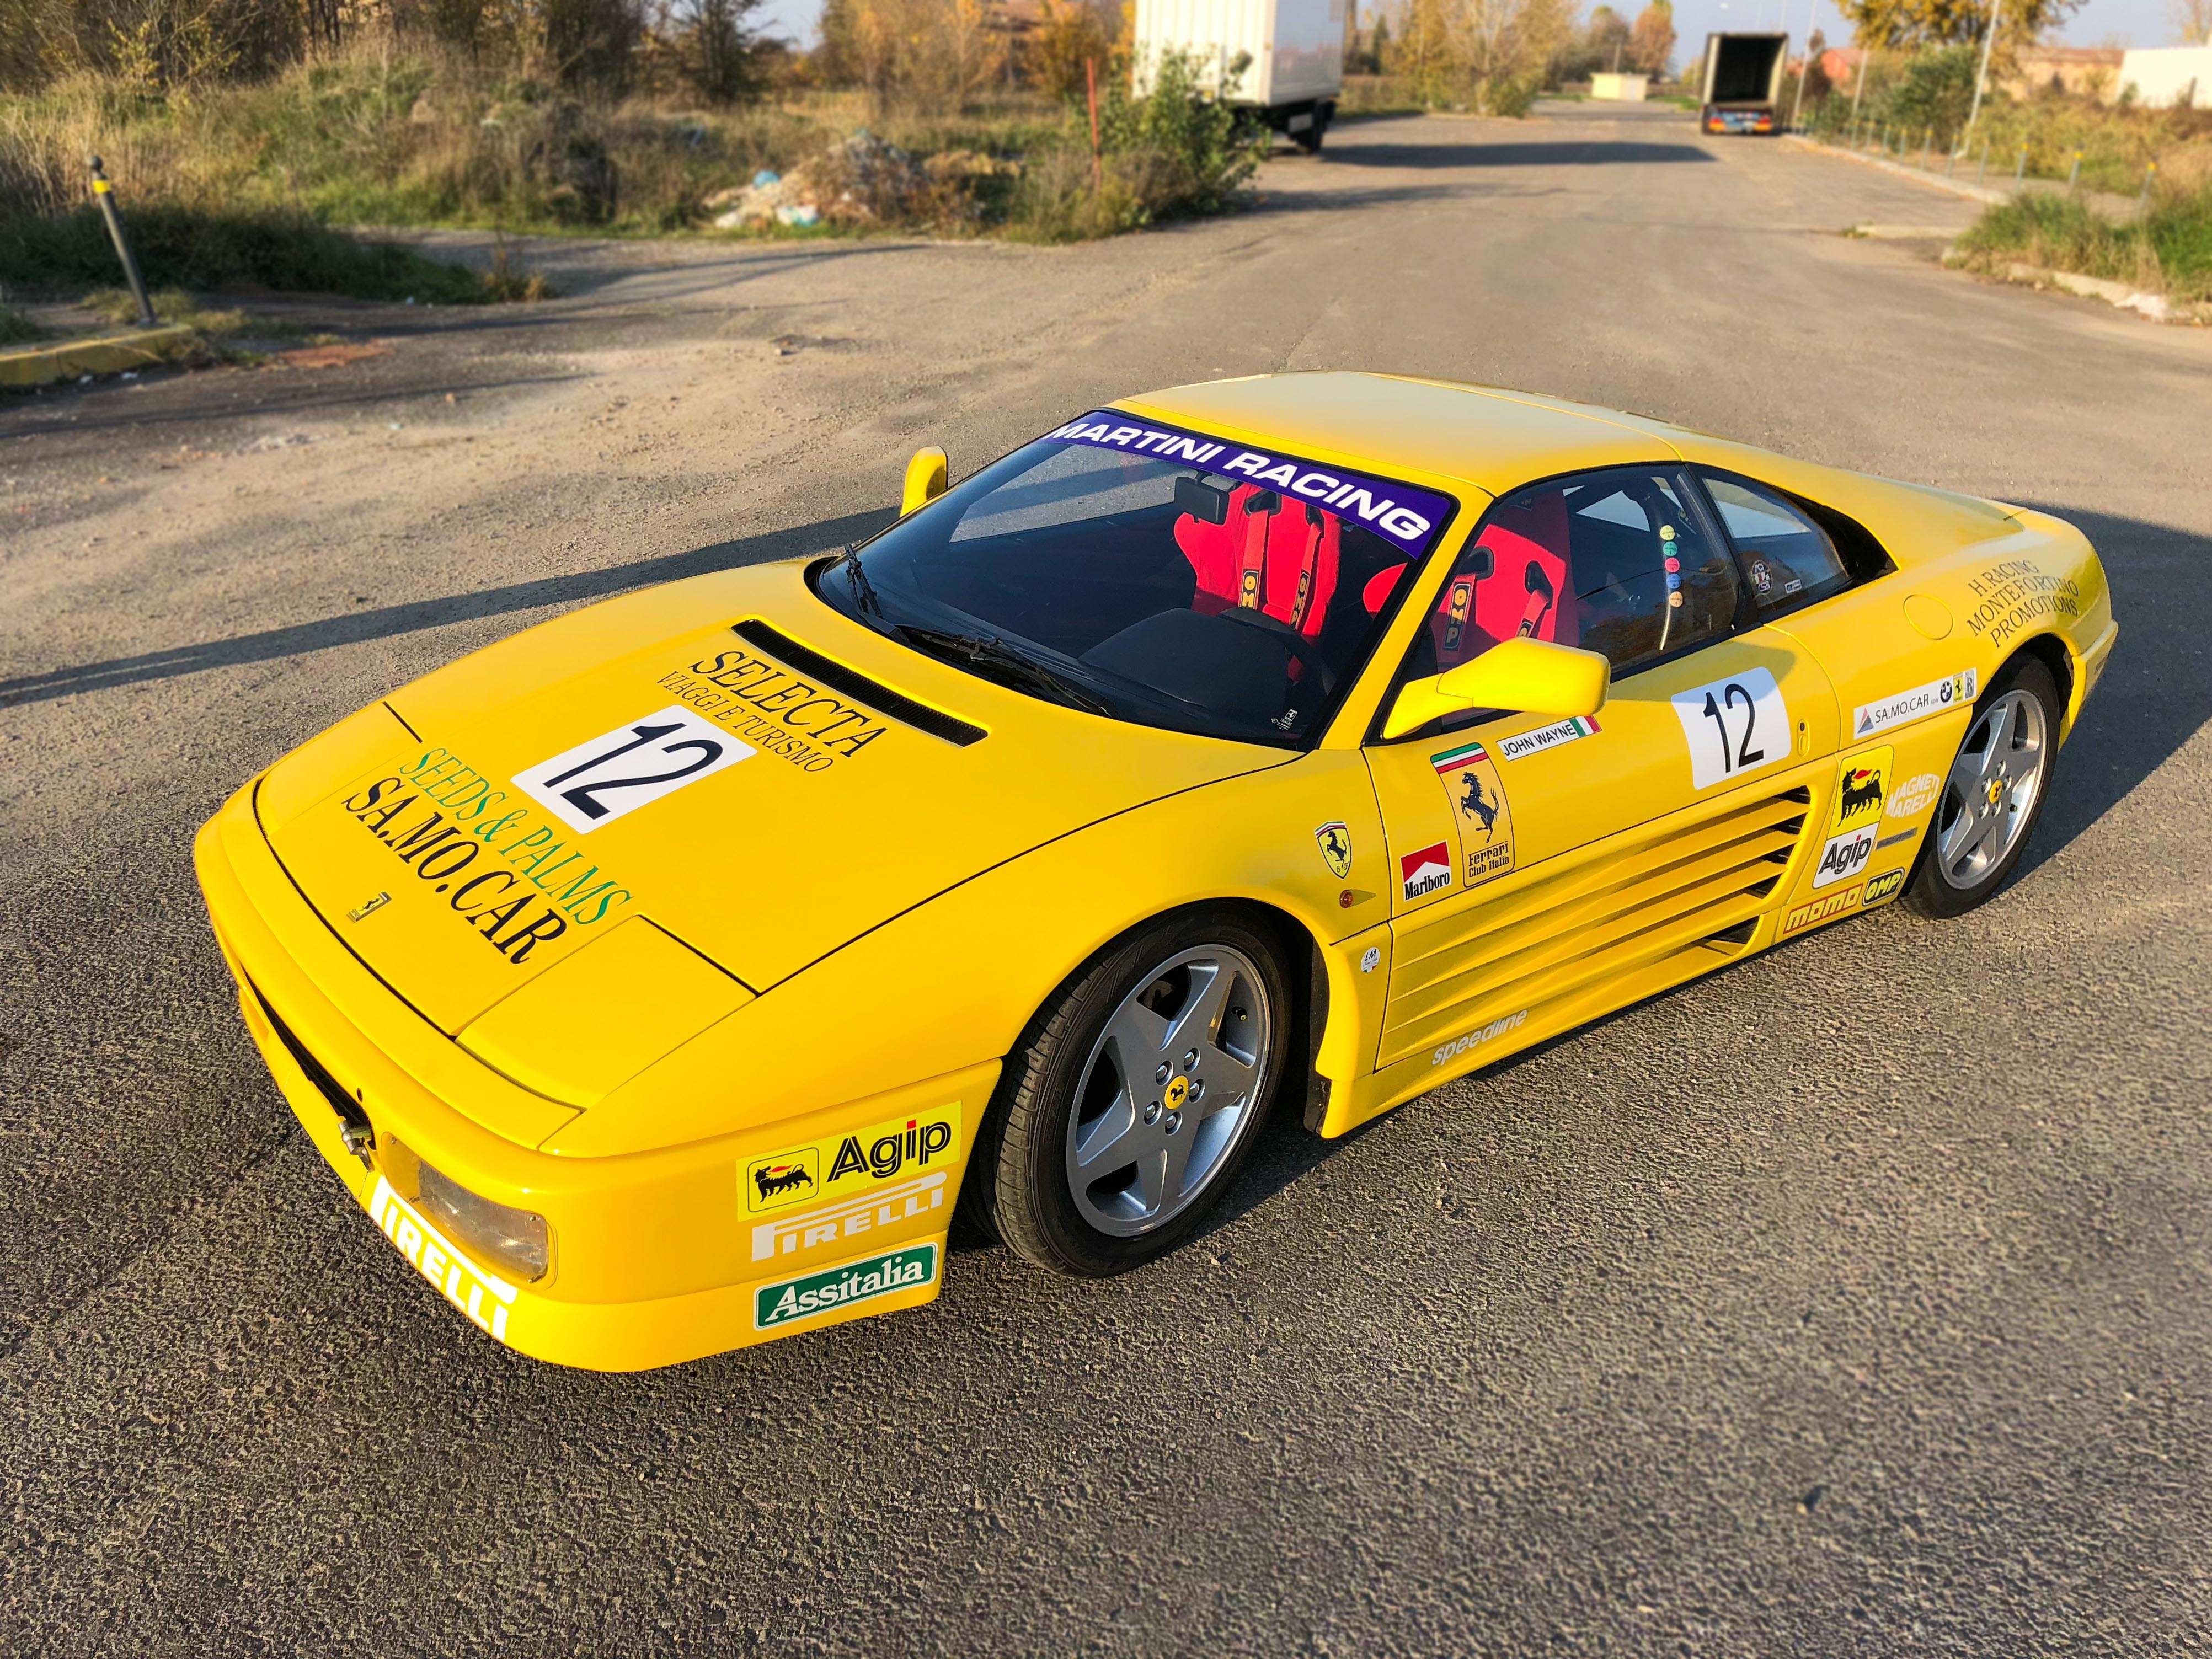 car open pursuit ferrari fact used it parts in and weight details the ignore door like been of back has throw s scuderia ditched stepping review time saving twintest carpet vs new that guide buyers